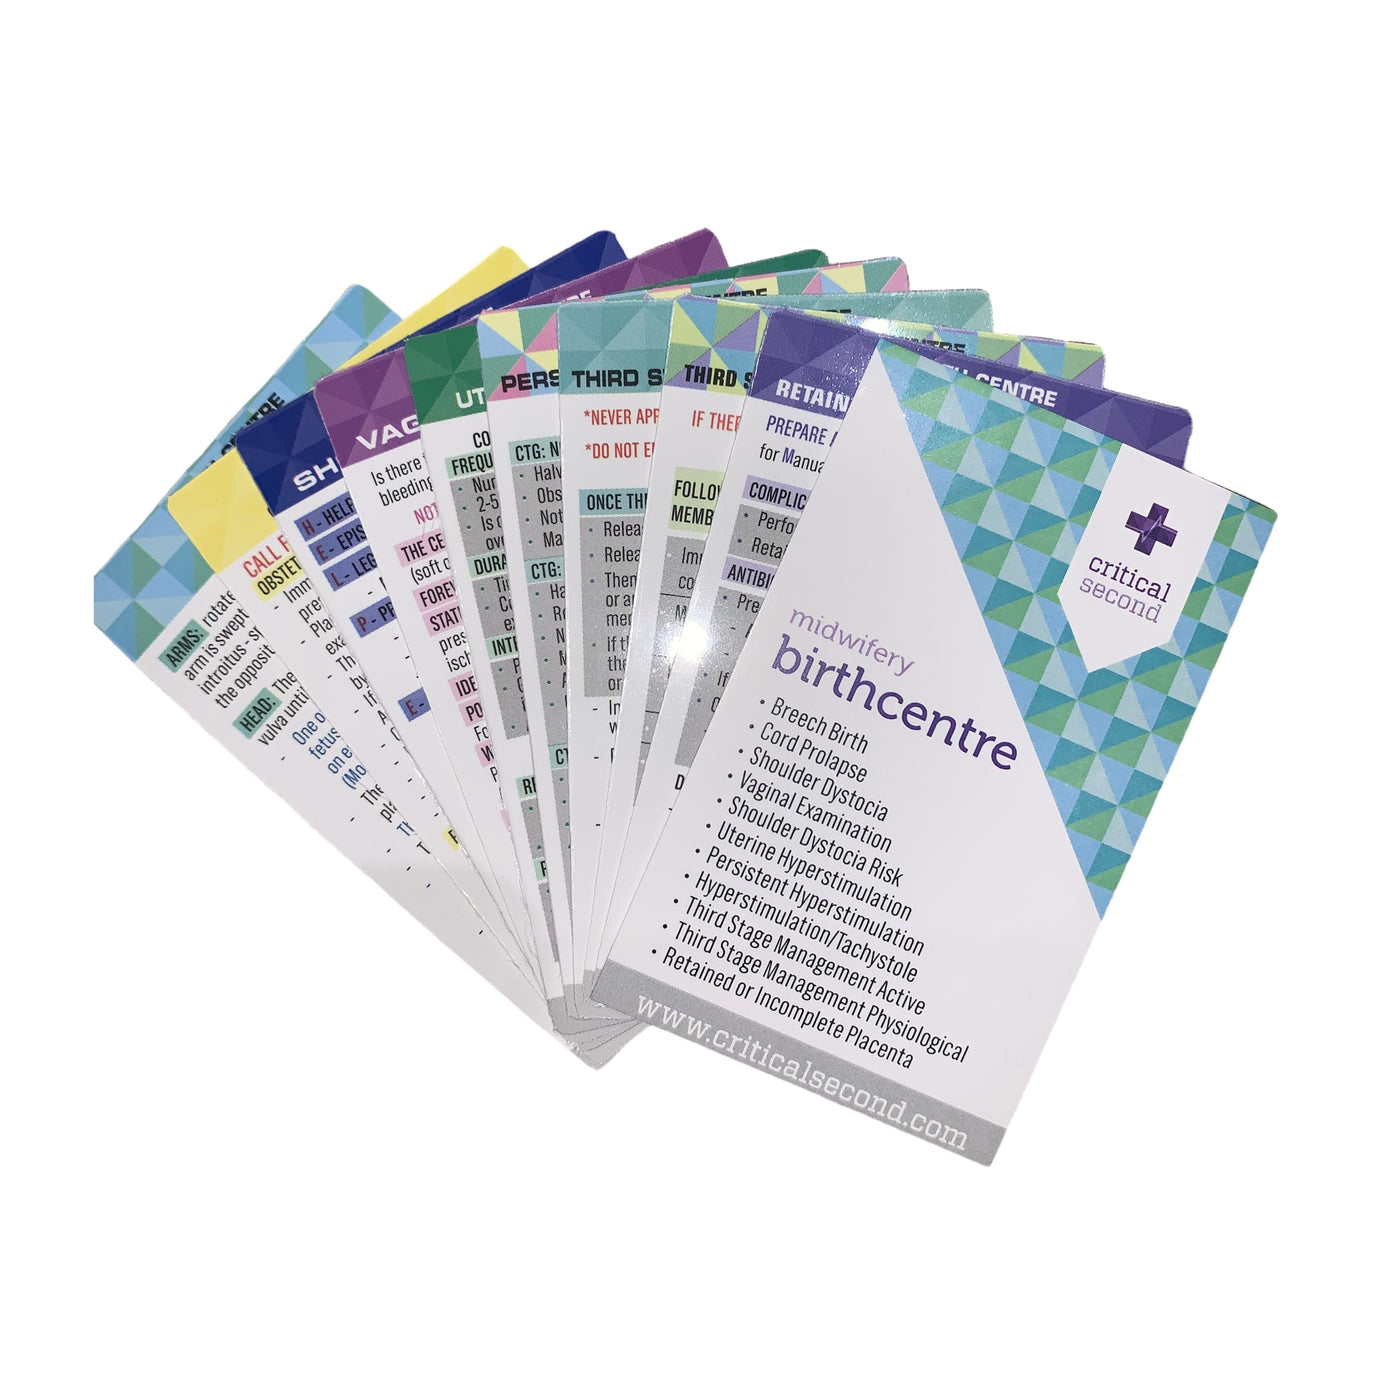 Cue Card Mini Pack - Birth Centre